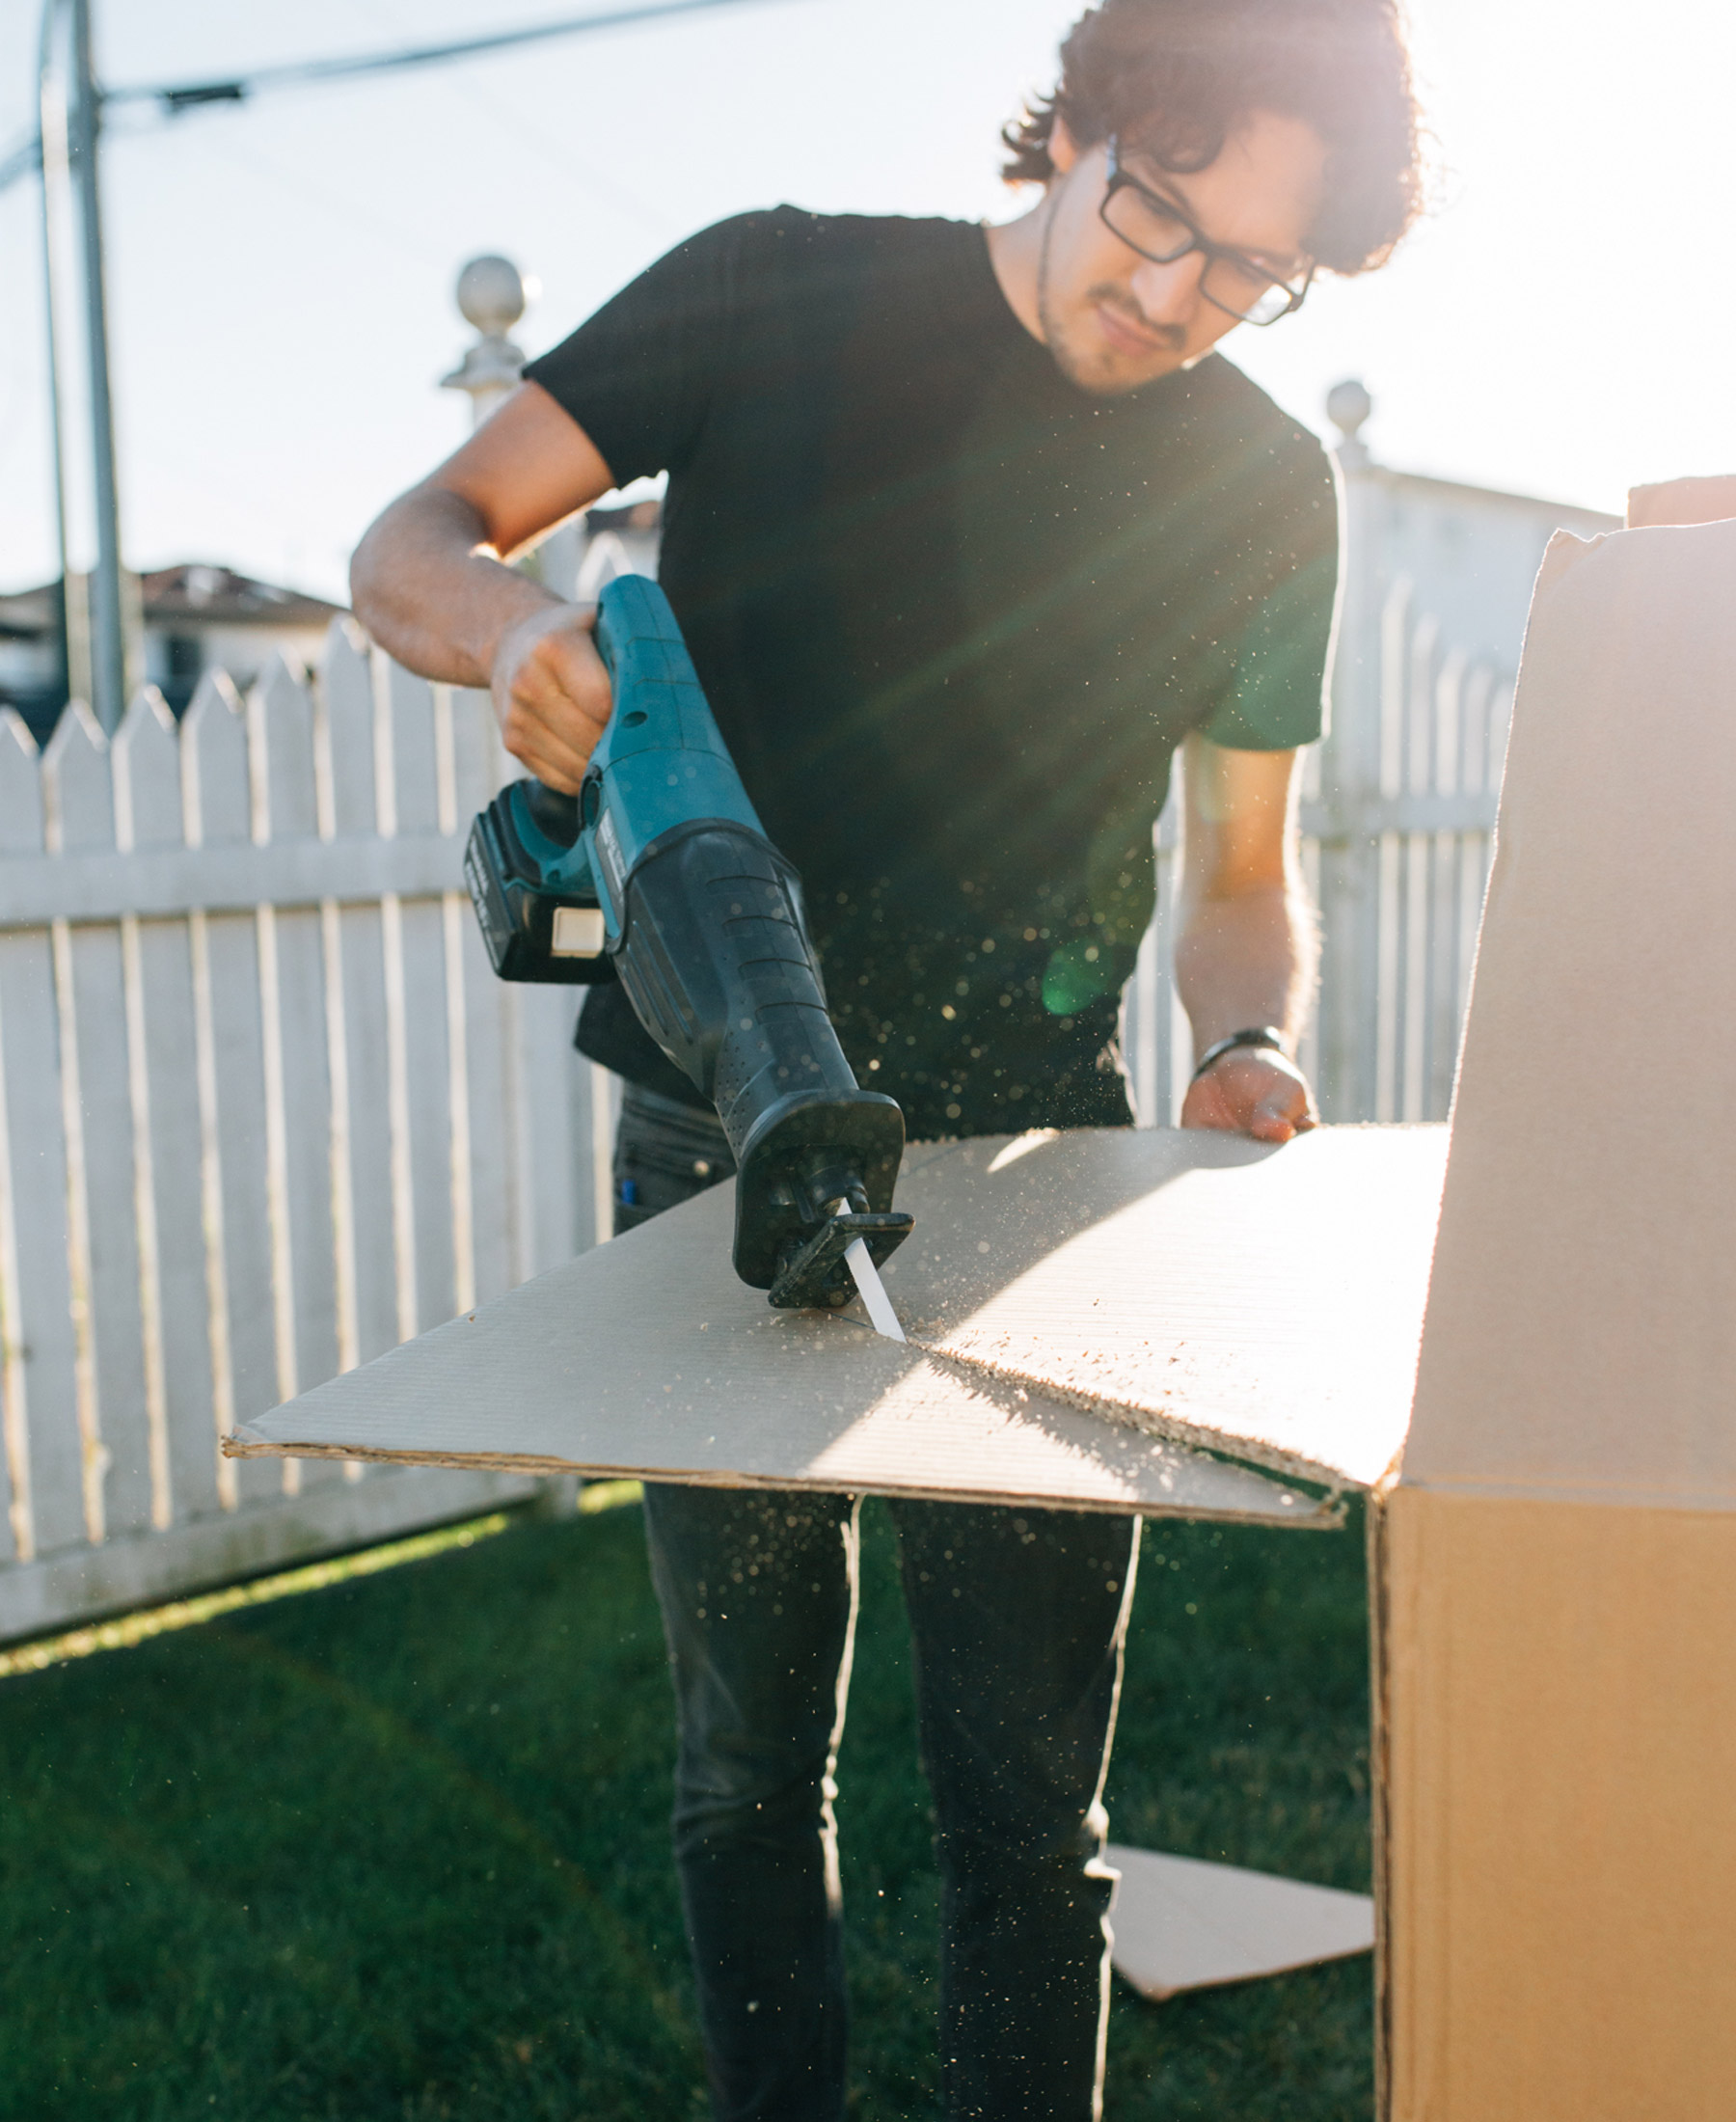 Jorge cuts into a cardboard box using a reciprocating saw to create pieces for a box fort.